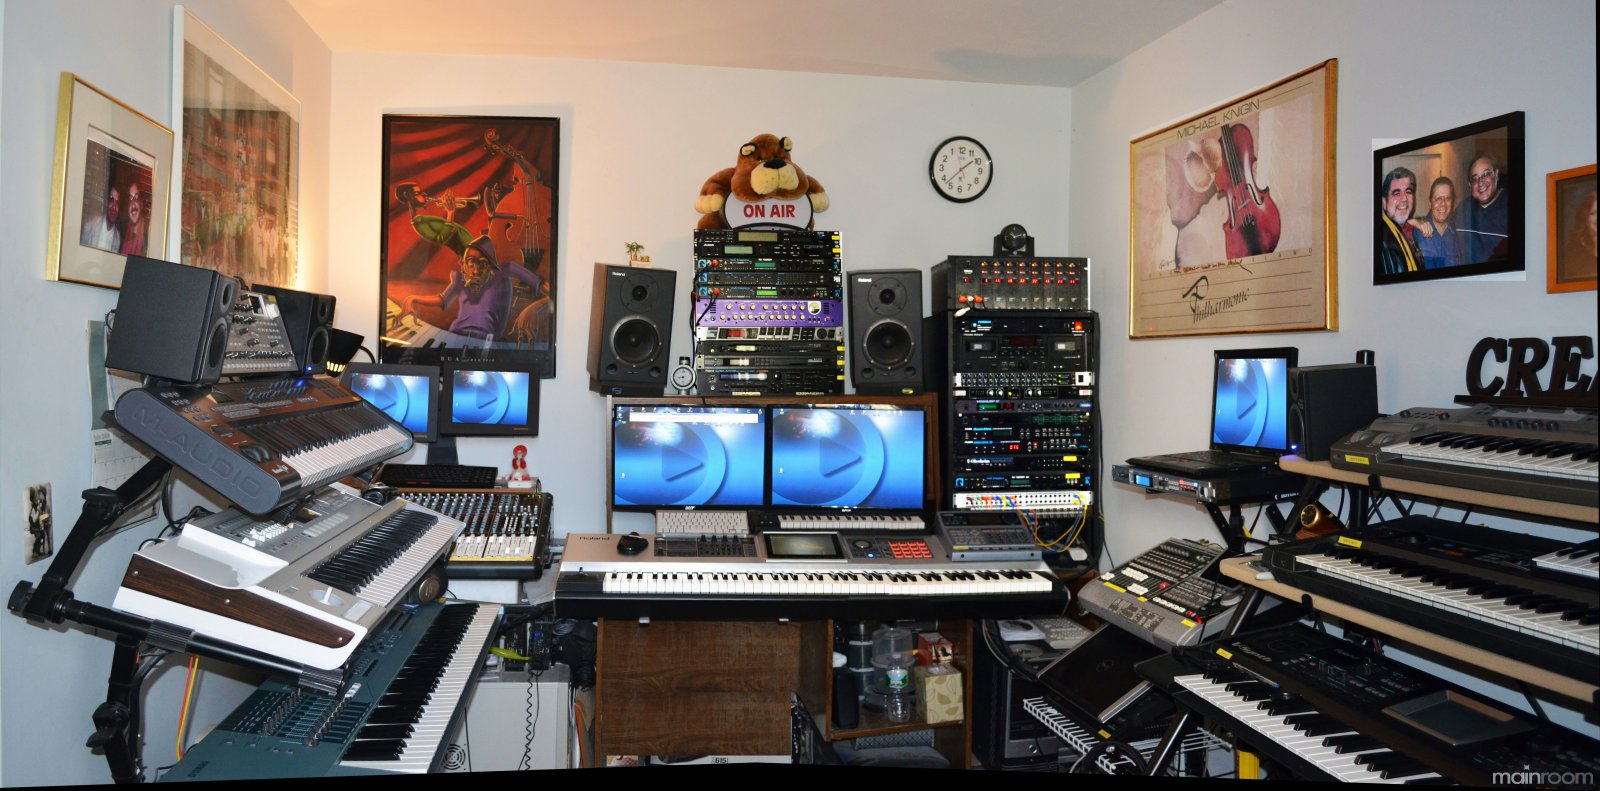 Home studios recording studio photo gallery - Home studio ...